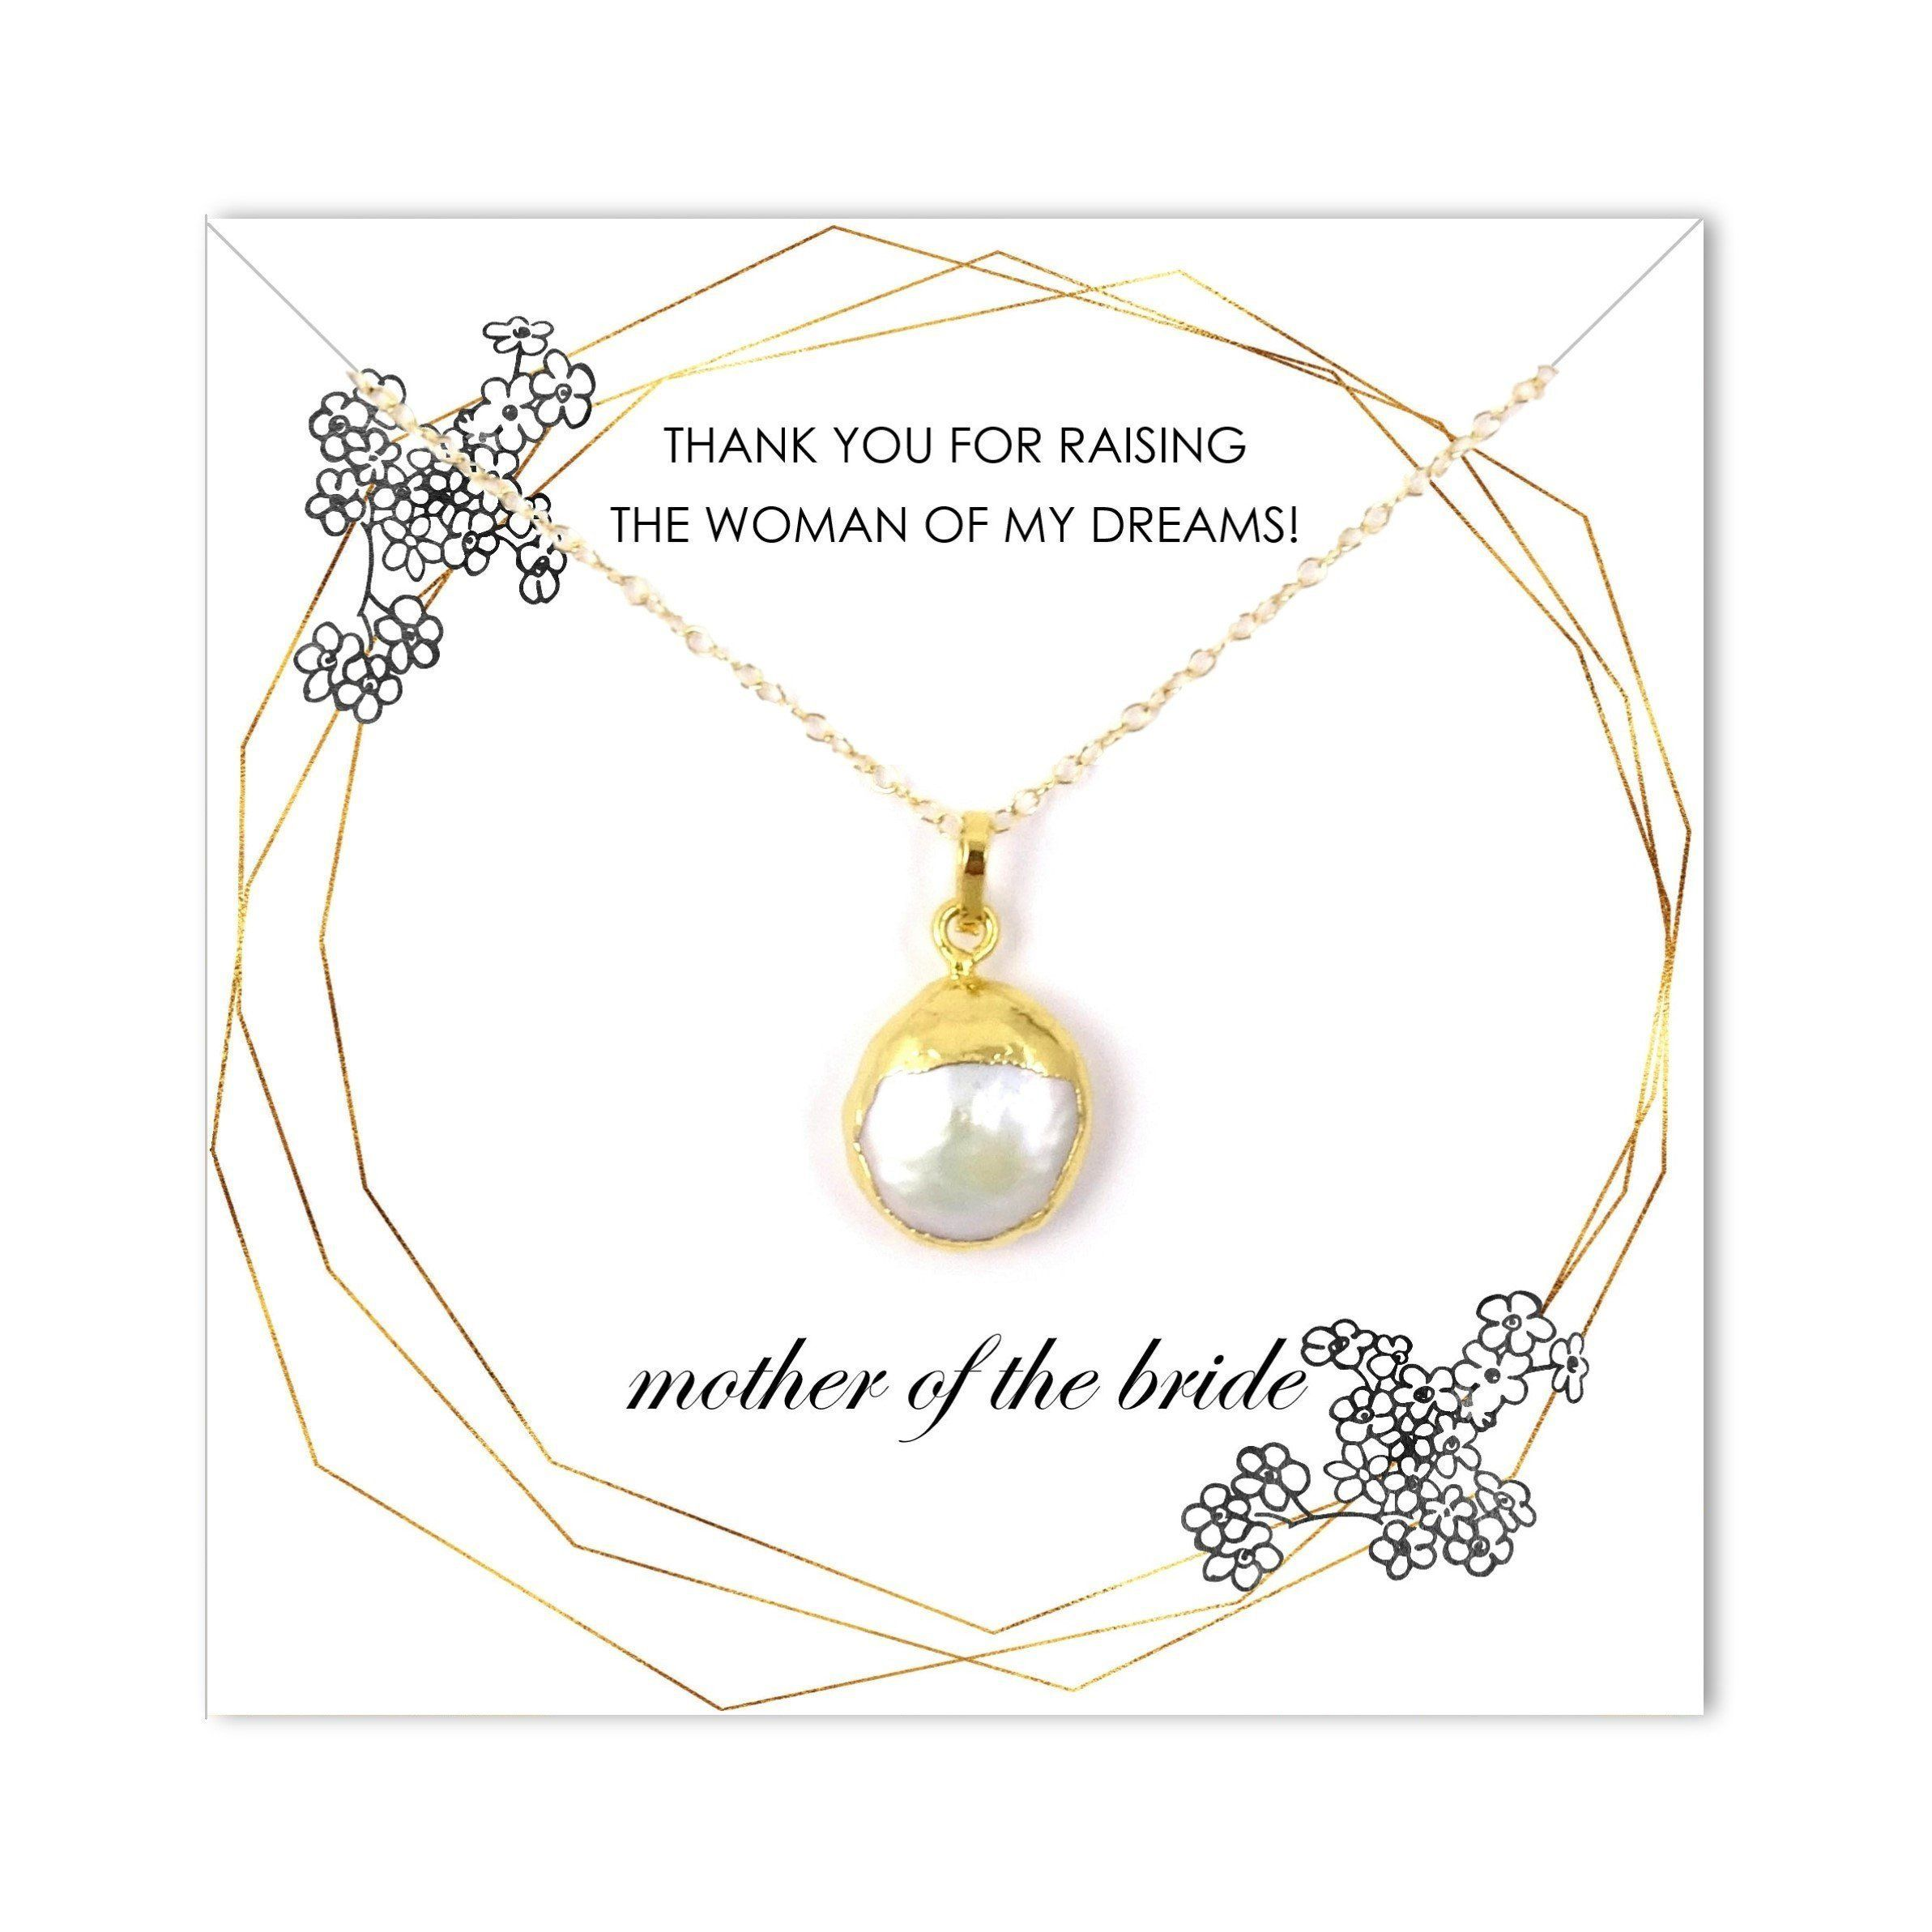 Wedding Necklace Mother Of Bride Thank You For Raising Woman My Dreams Jewelry